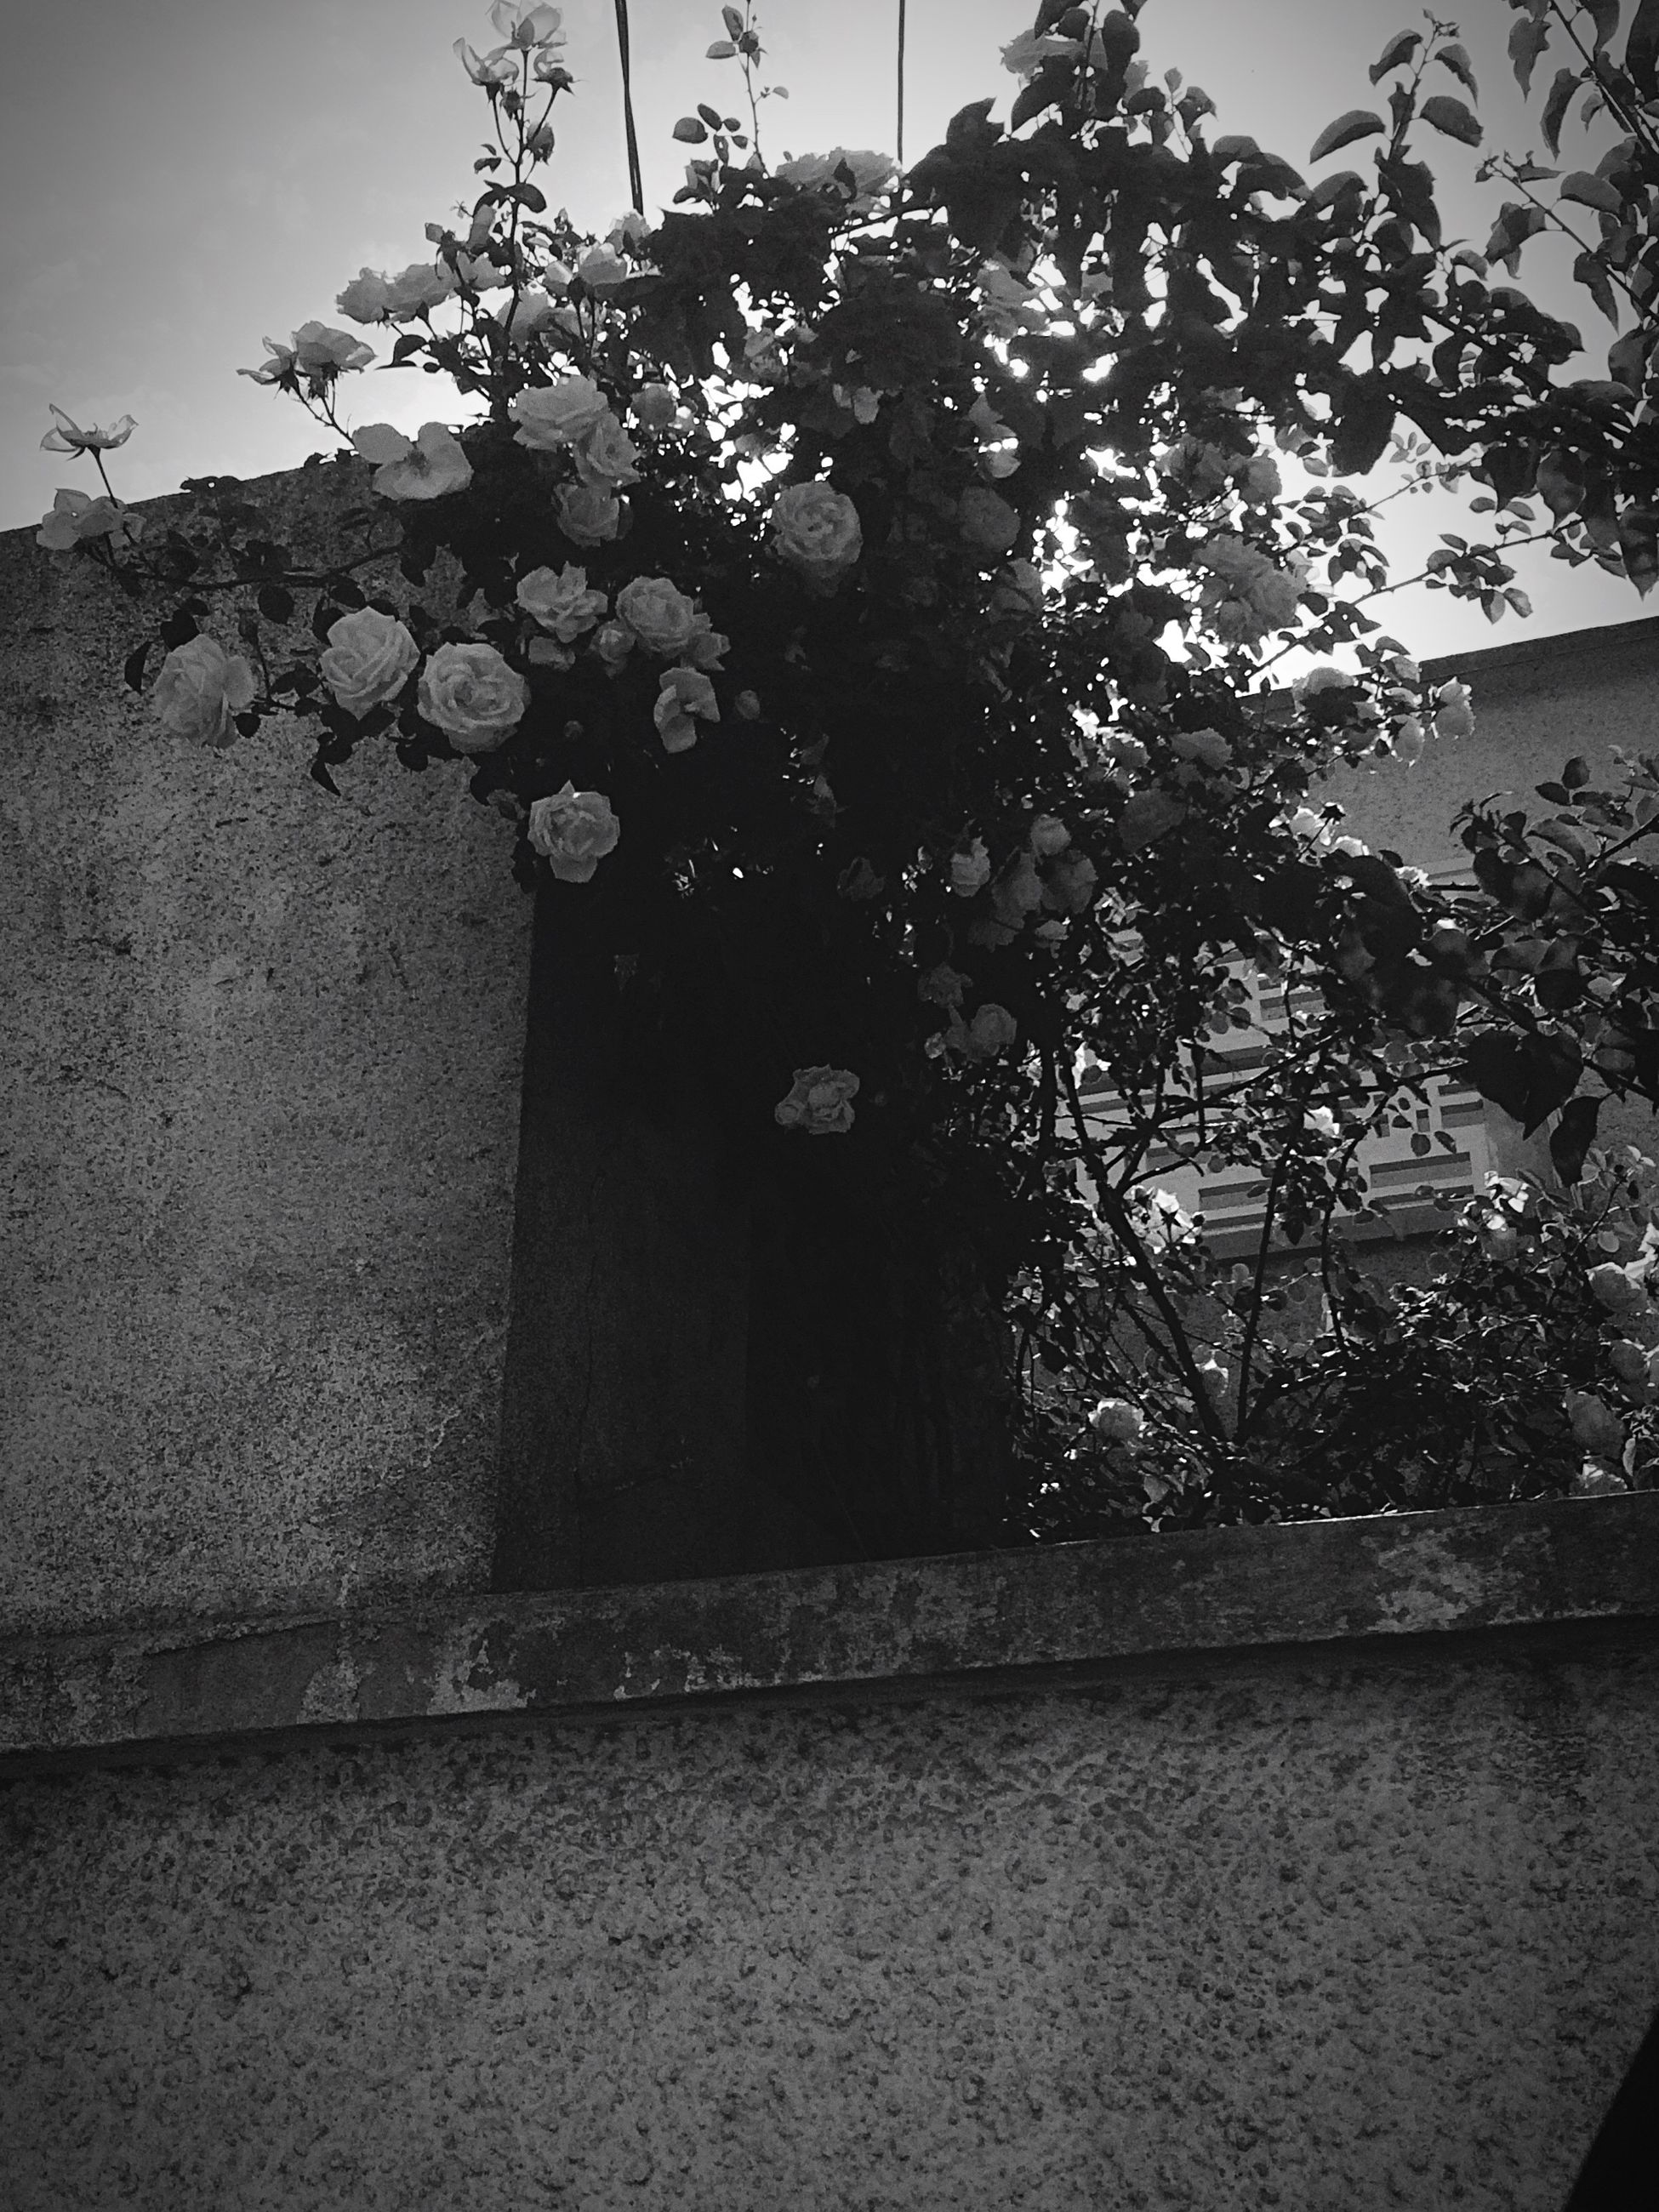 growth, tree, no people, day, architecture, nature, outdoors, built structure, plant, building exterior, flower, close-up